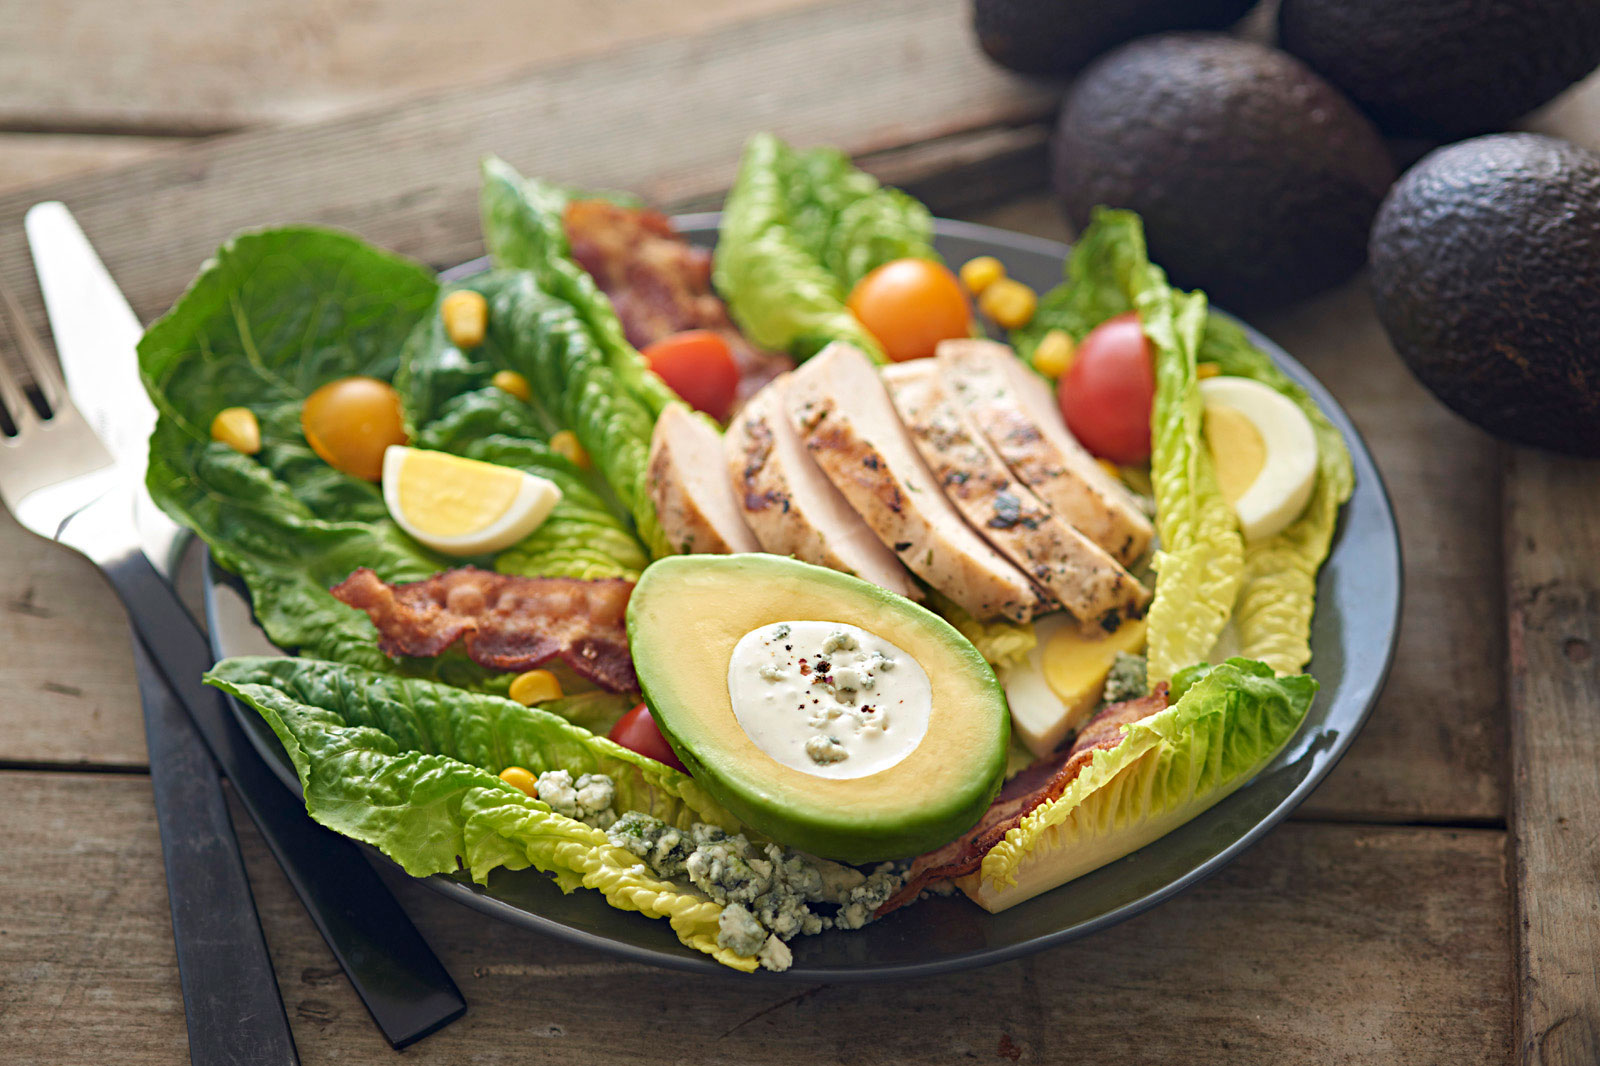 Beautiful-food-photography-of-grilled-chicken-cobb-salad-with-avocado-cup-blue-cheese-dressing